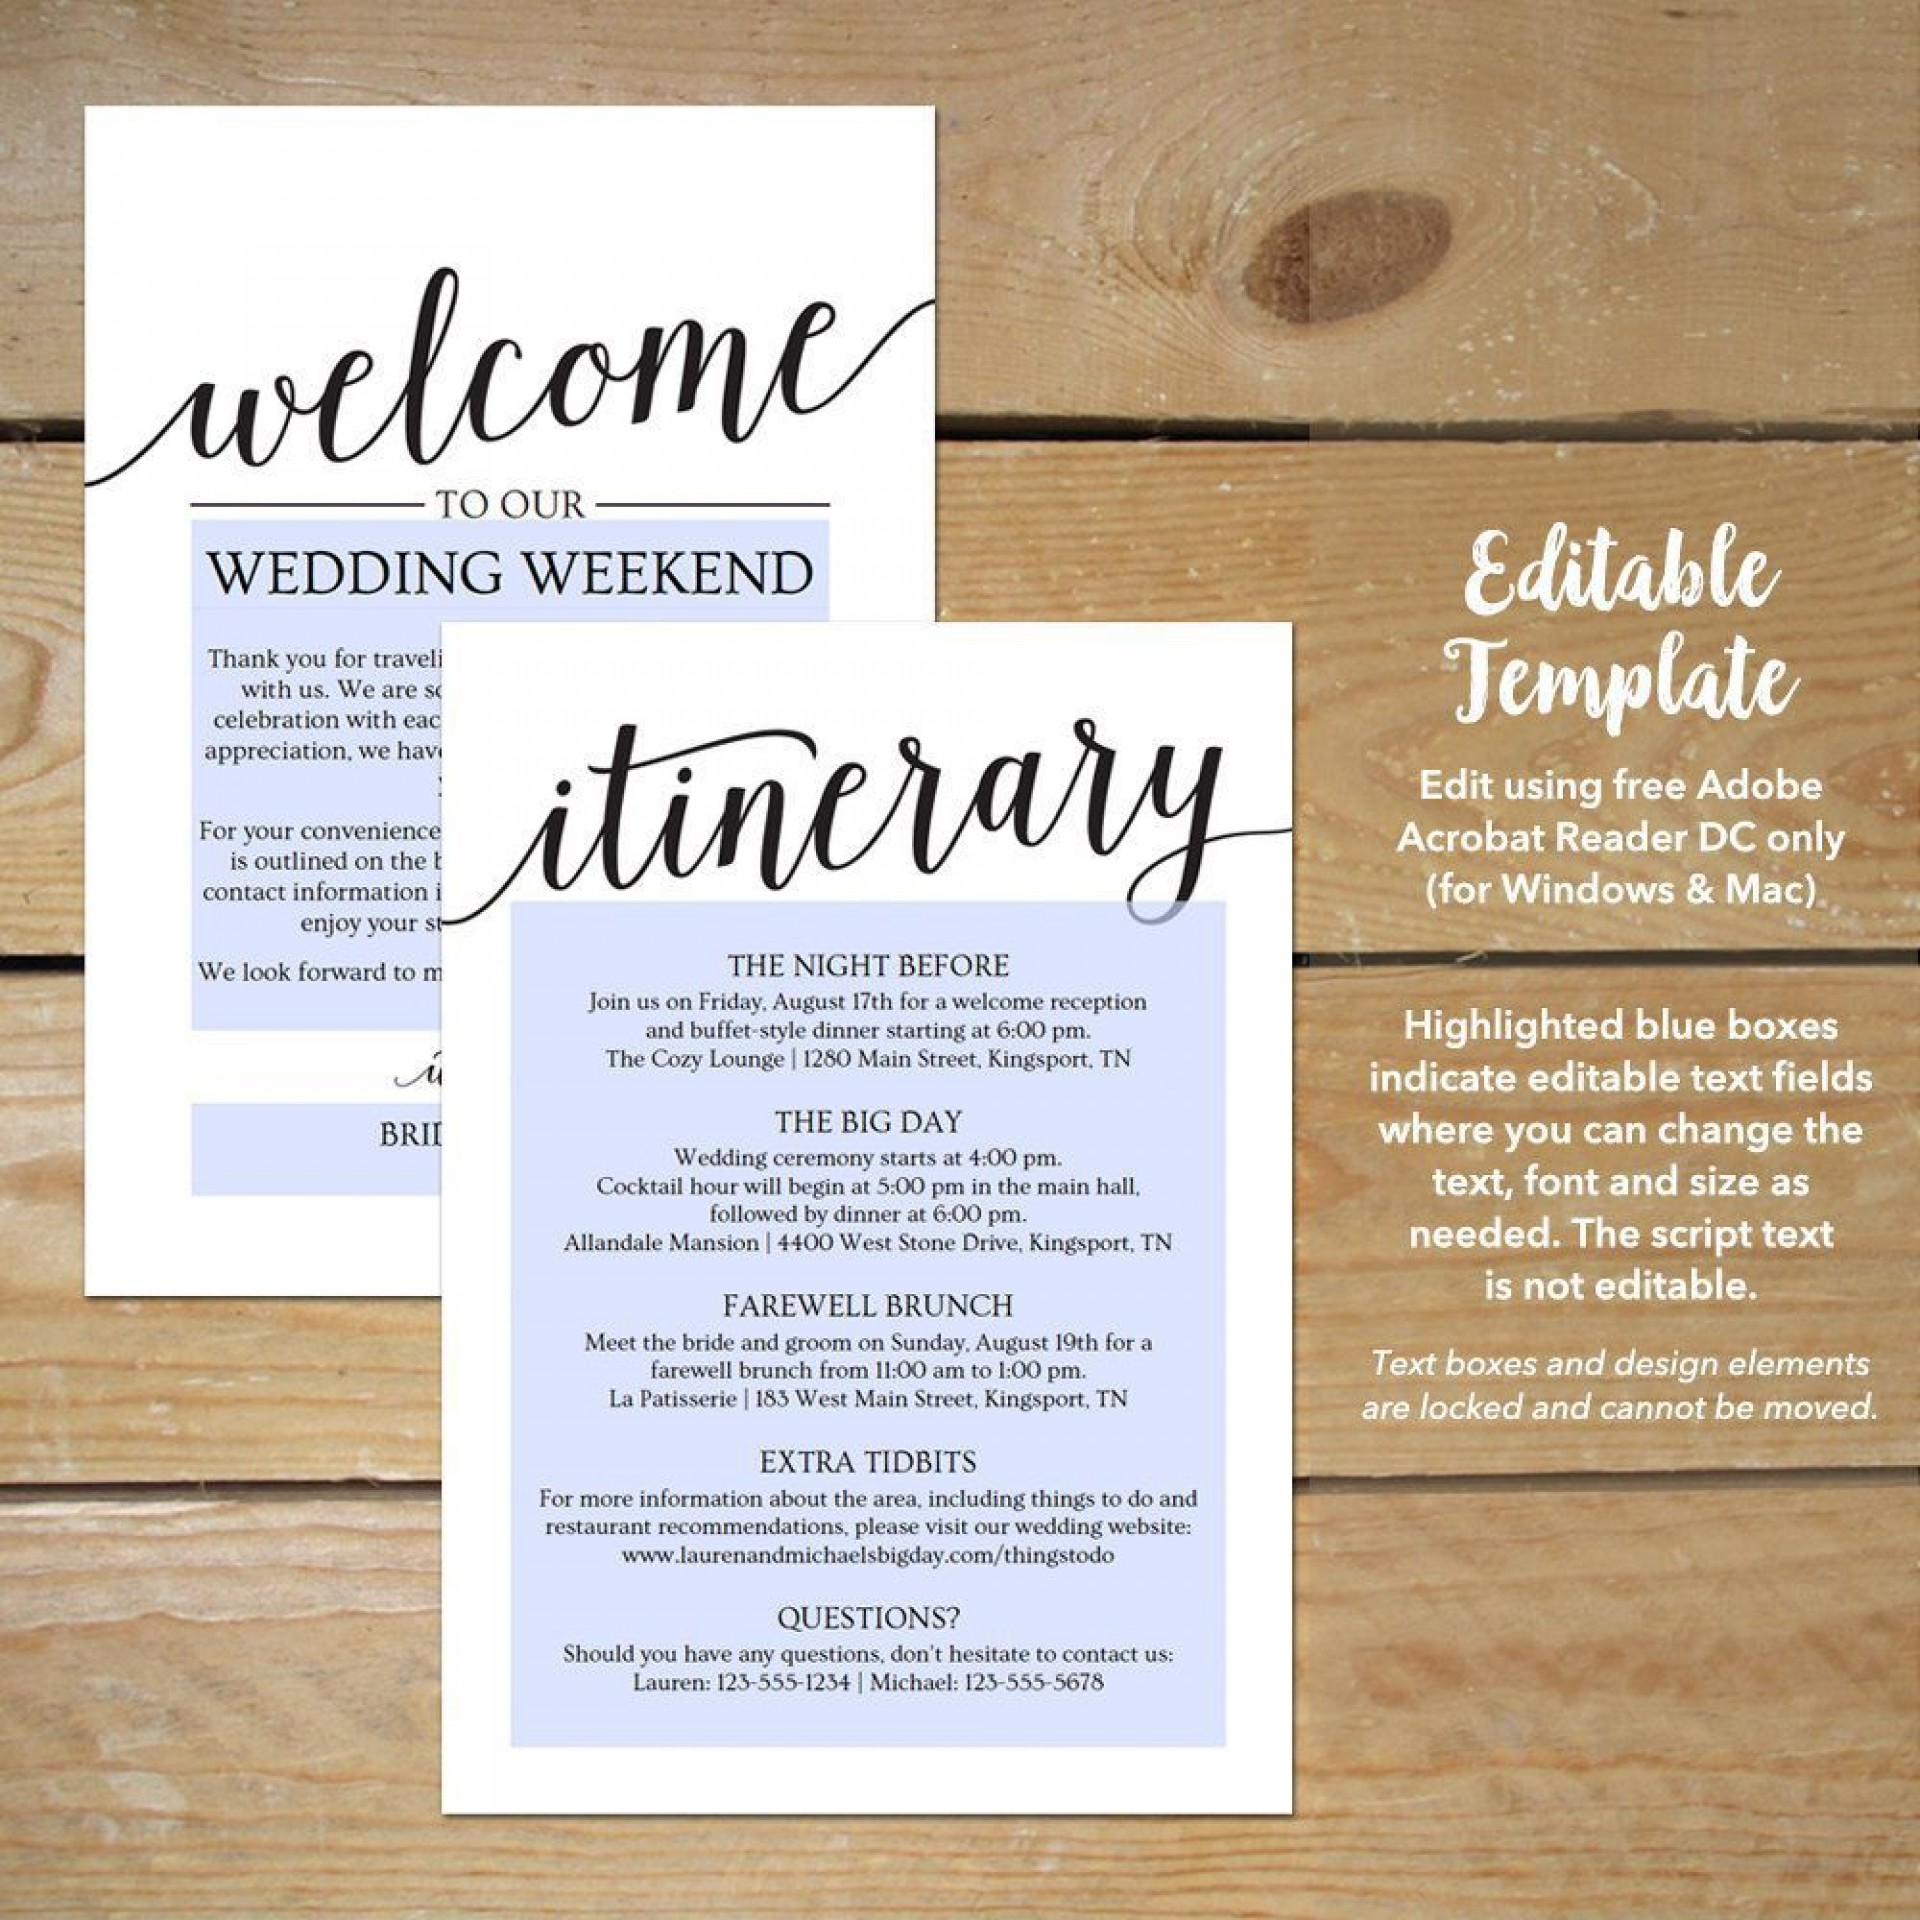 003 Fearsome Wedding Welcome Bag Letter Template Free Idea 1920